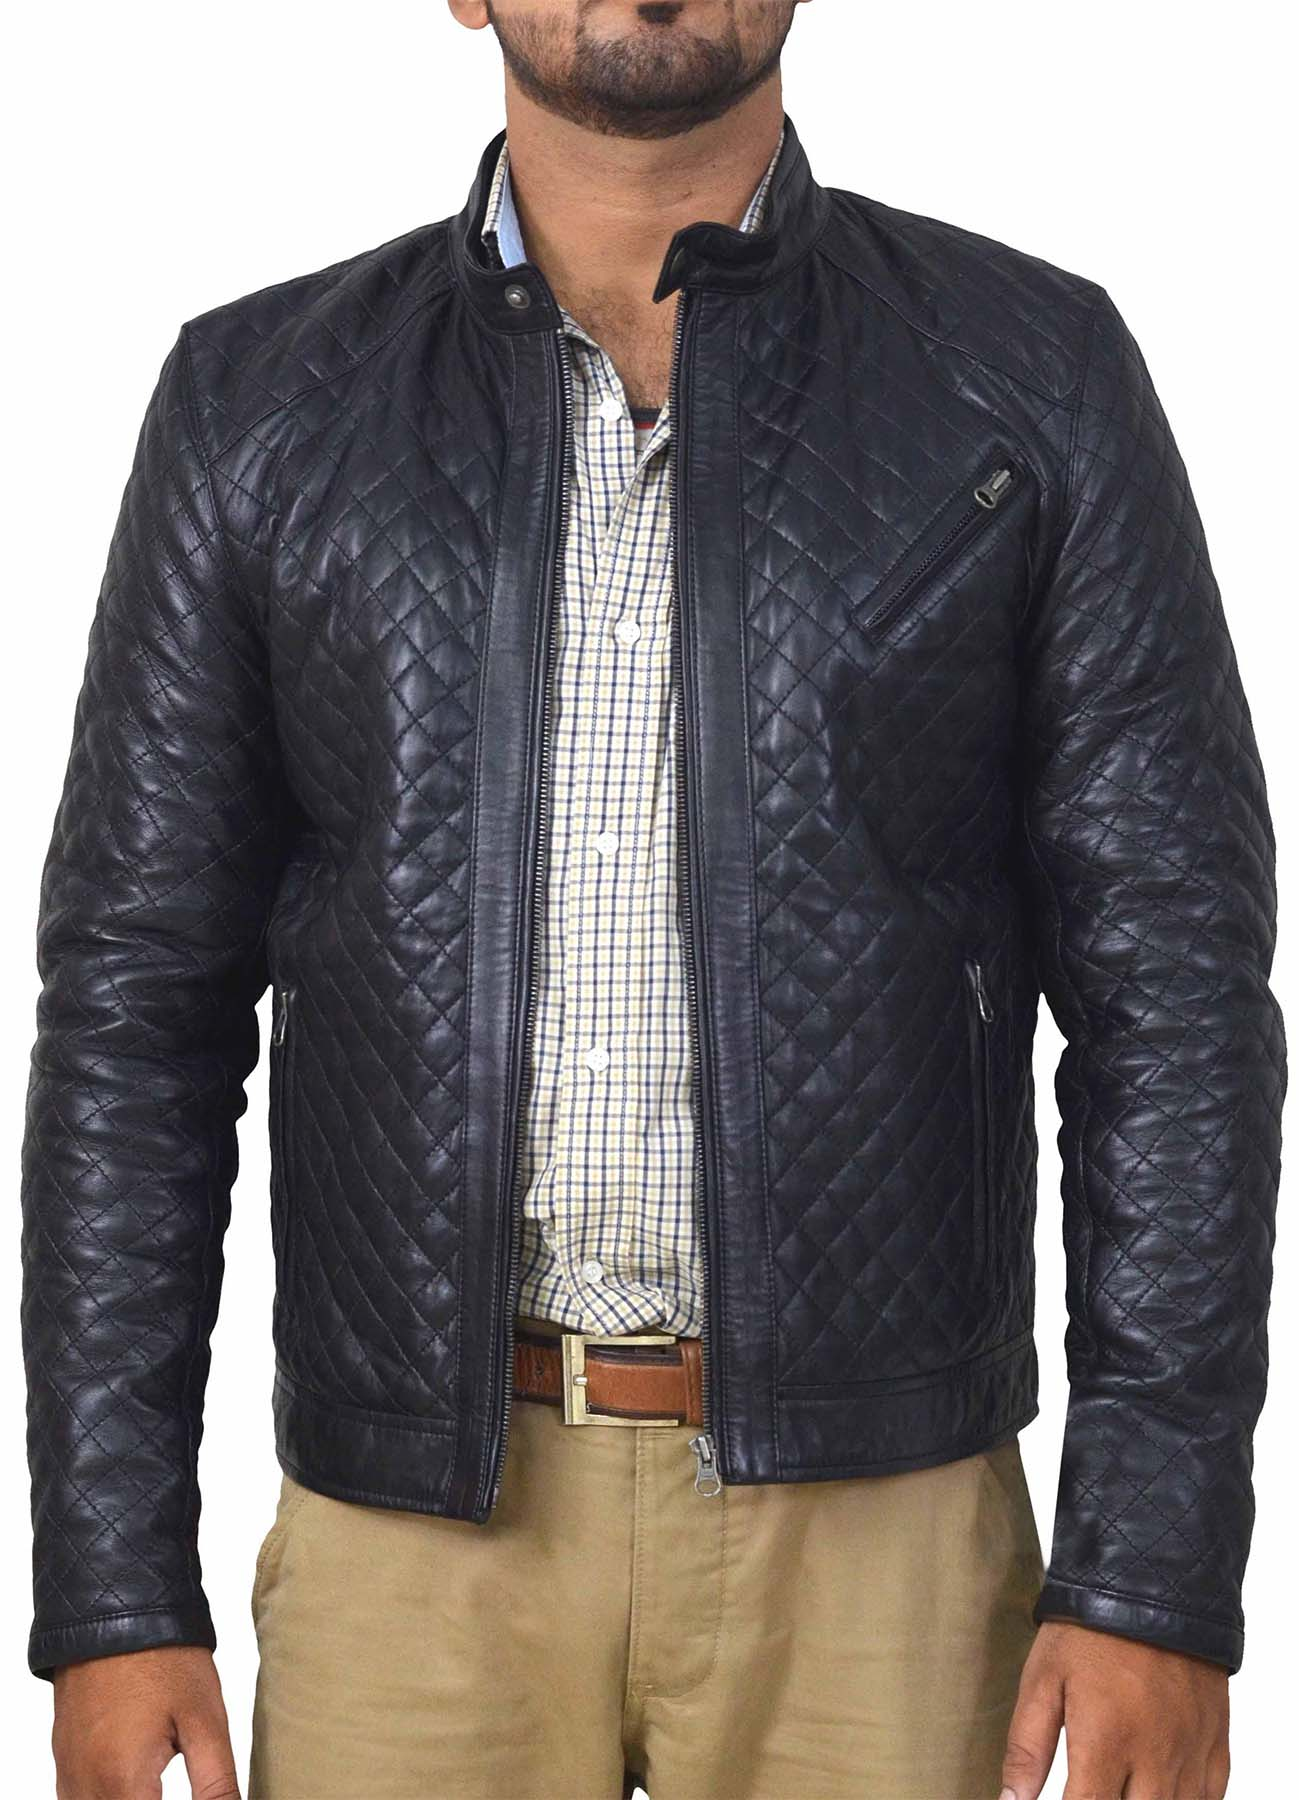 Black Fully Diamond Quilted Leather Jacket For Men